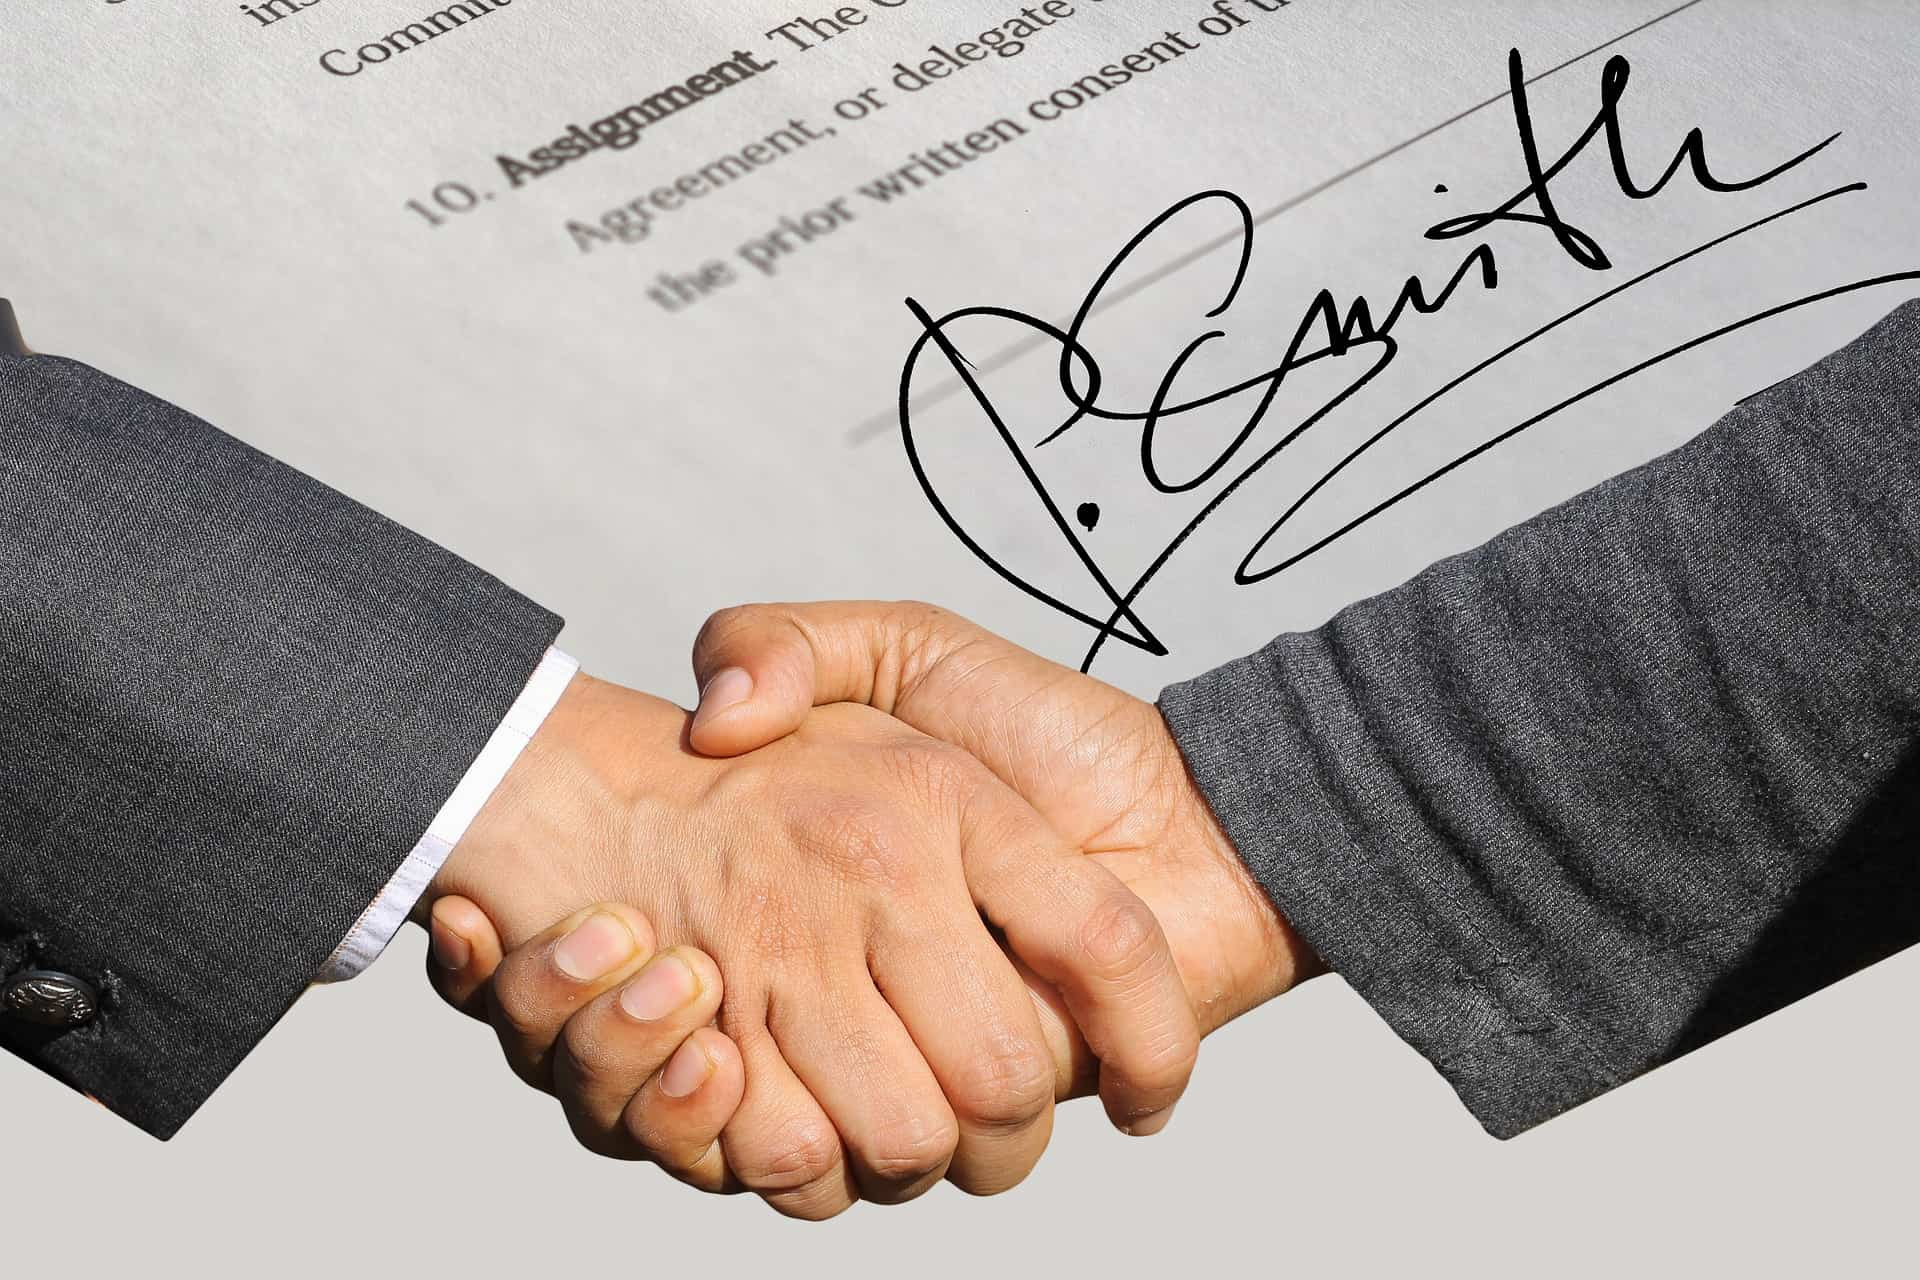 vague contracts